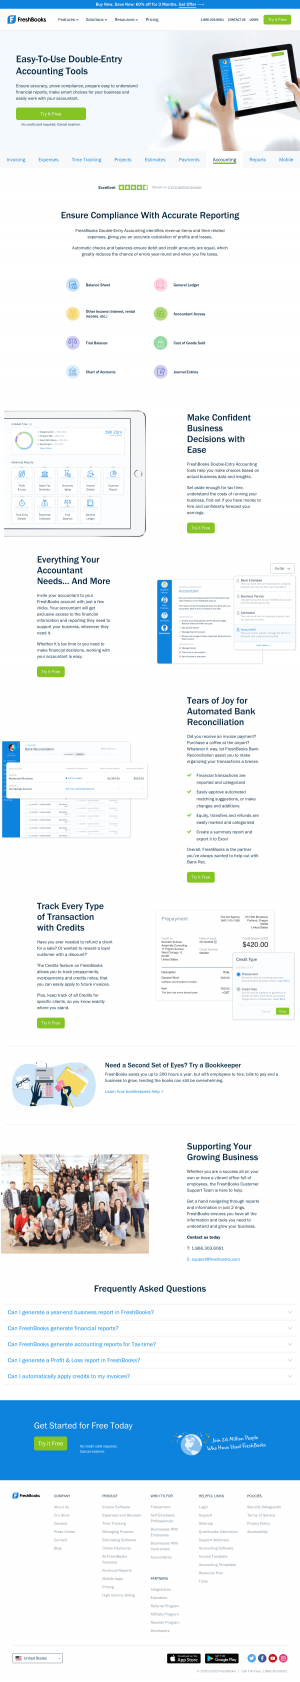 FreshBooks – Features page 3